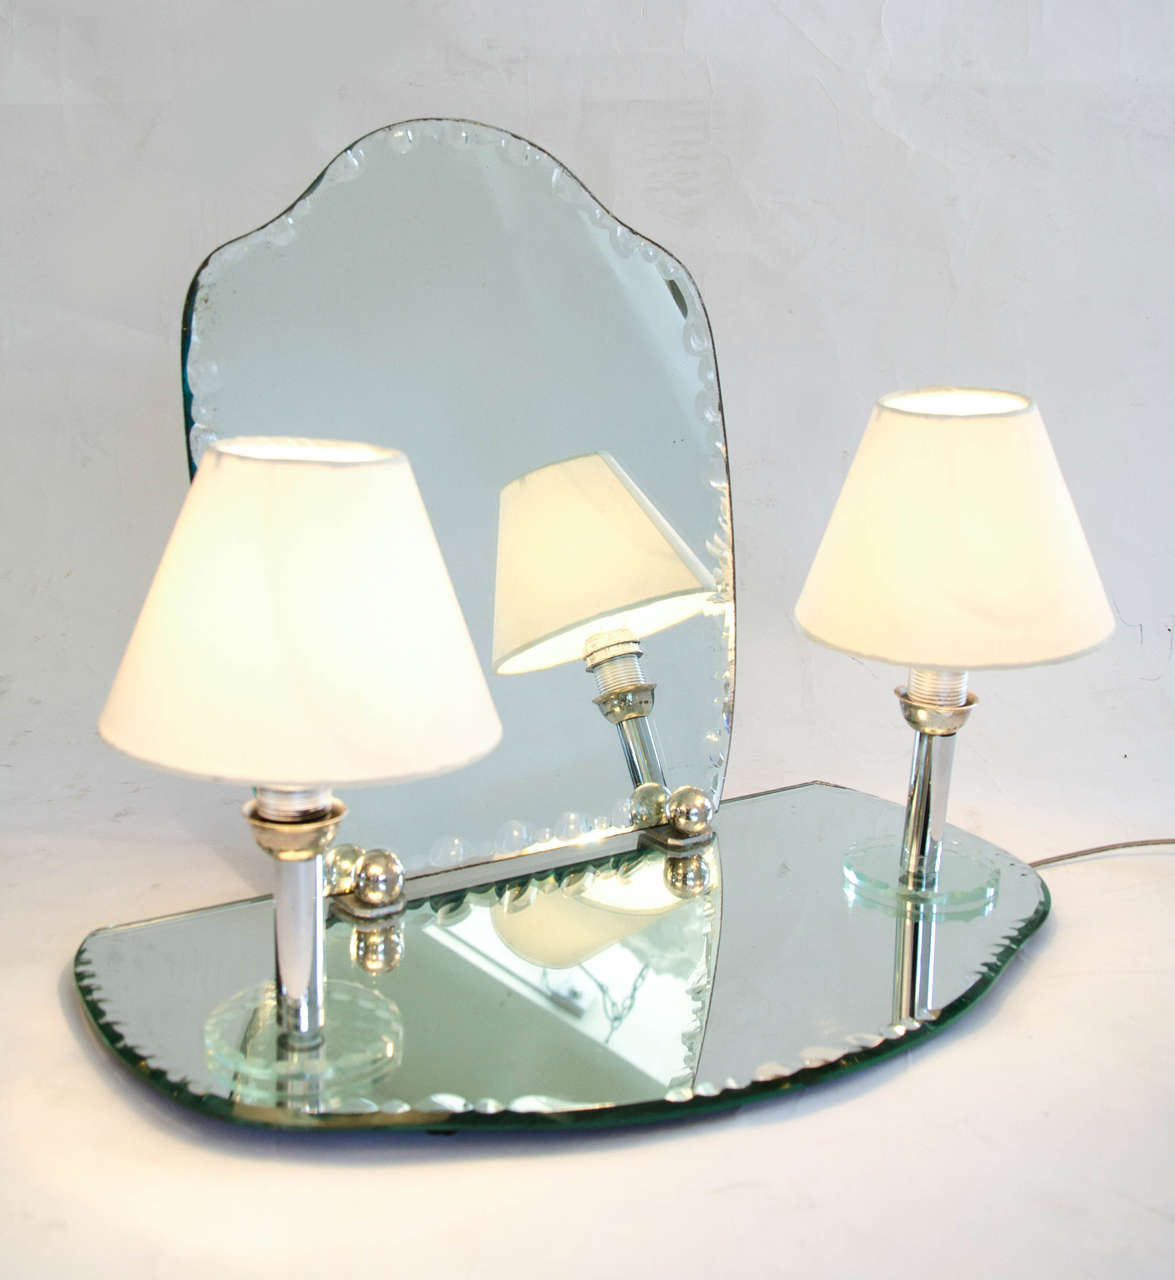 Dressing Table Lights : 1950s Dressing Table Mirror with Integral Lights at 1stdibs